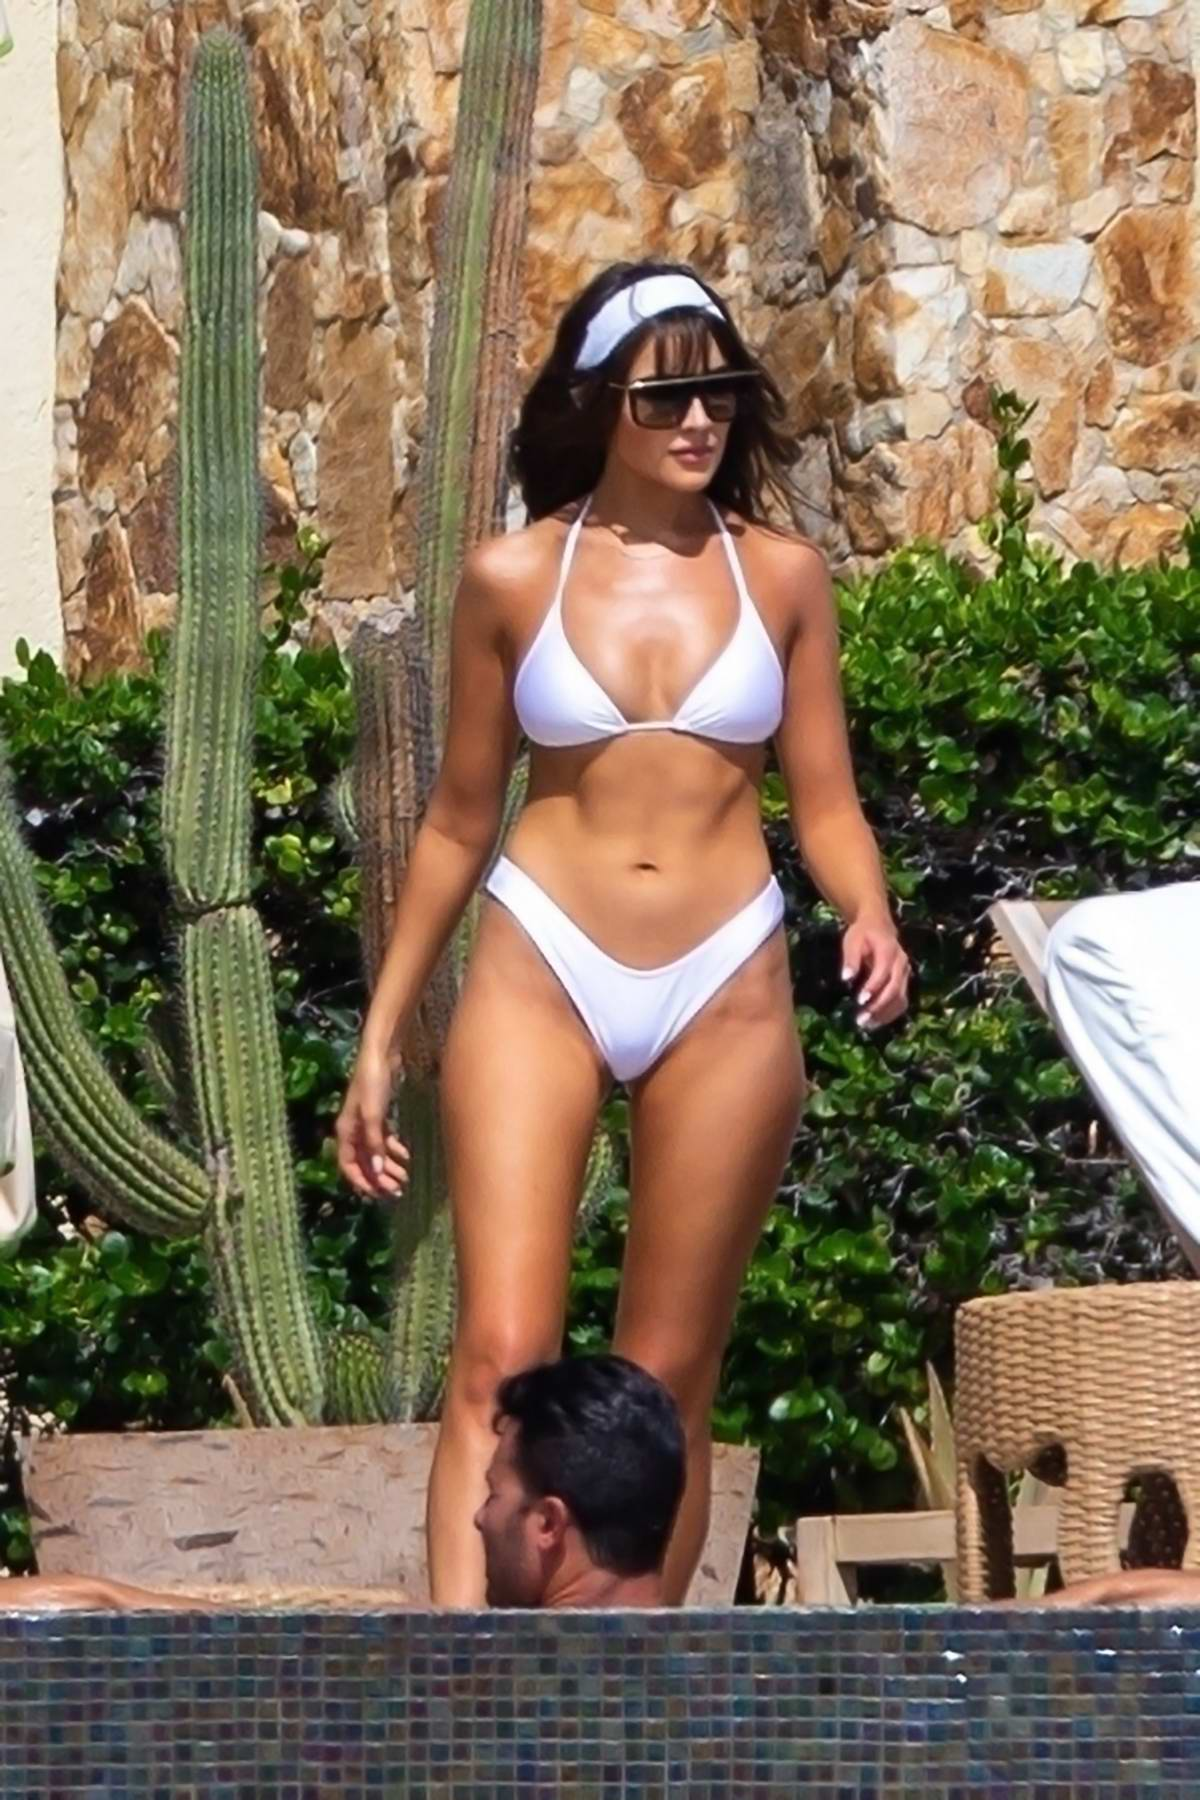 Olivia Culpo looks stunning in a white bikini while relaxing by the pool during her vacation in Cabo San Lucas, Mexico